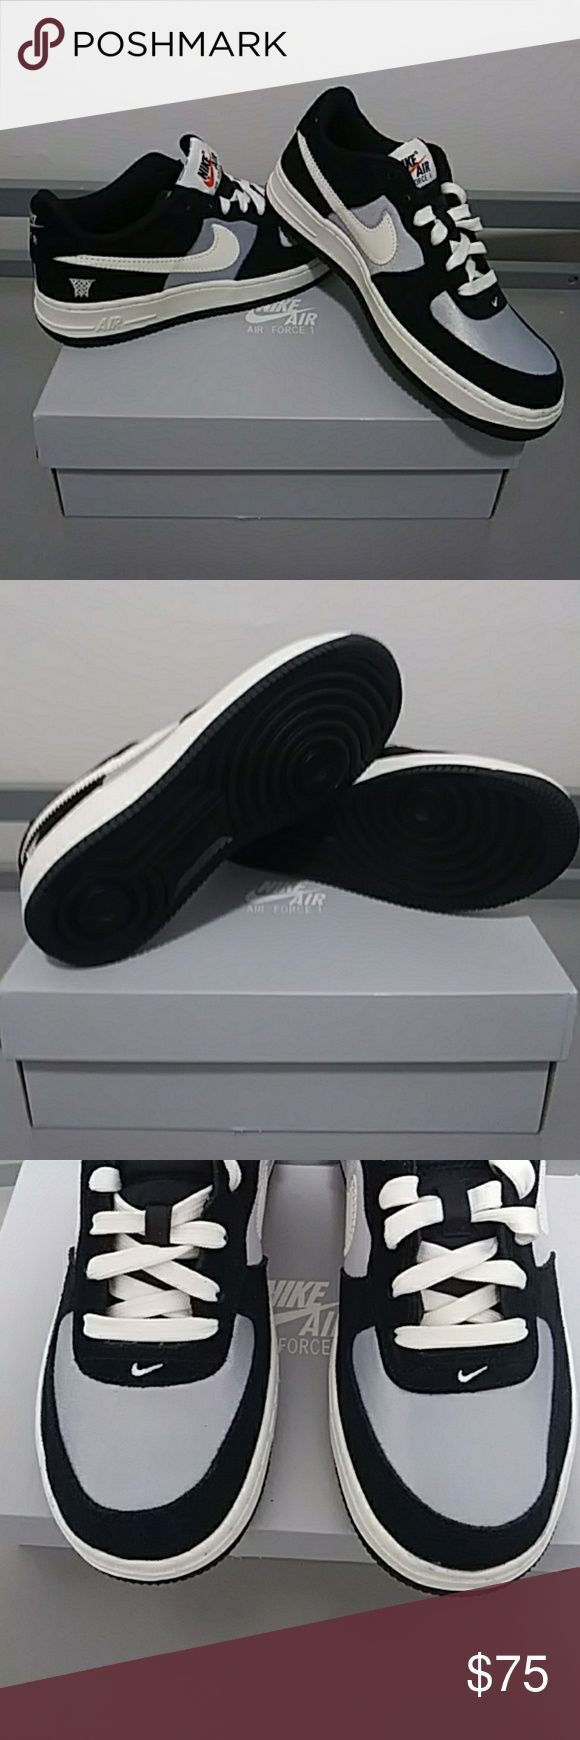 NWT 5Y Nike Air Force 1 Low top Basketball Shoes Tried on, never worn Nike Shoes Sneakers